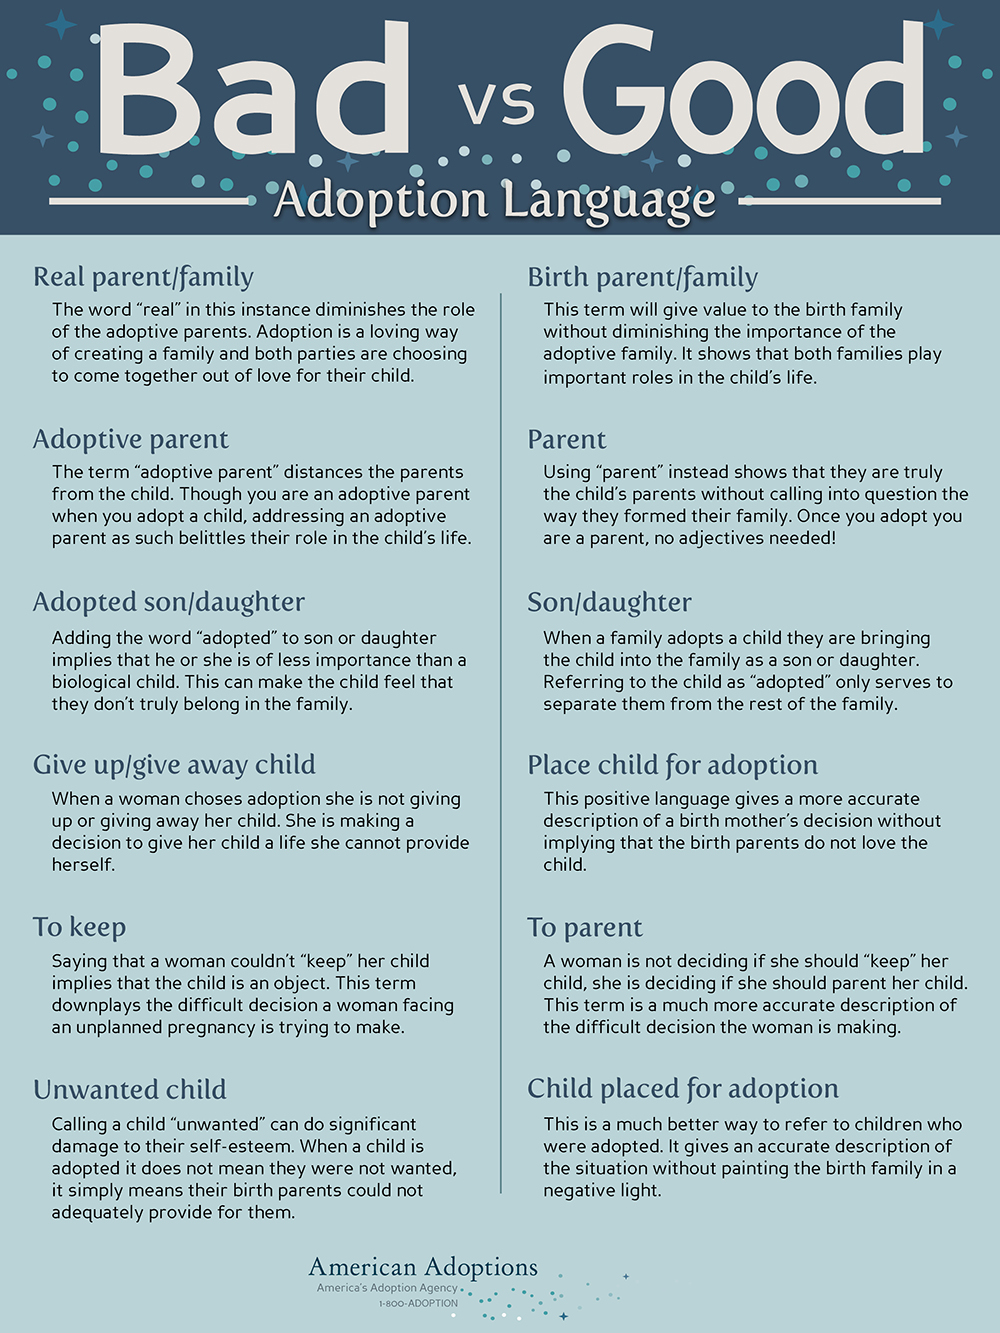 Adoption Language Infographic